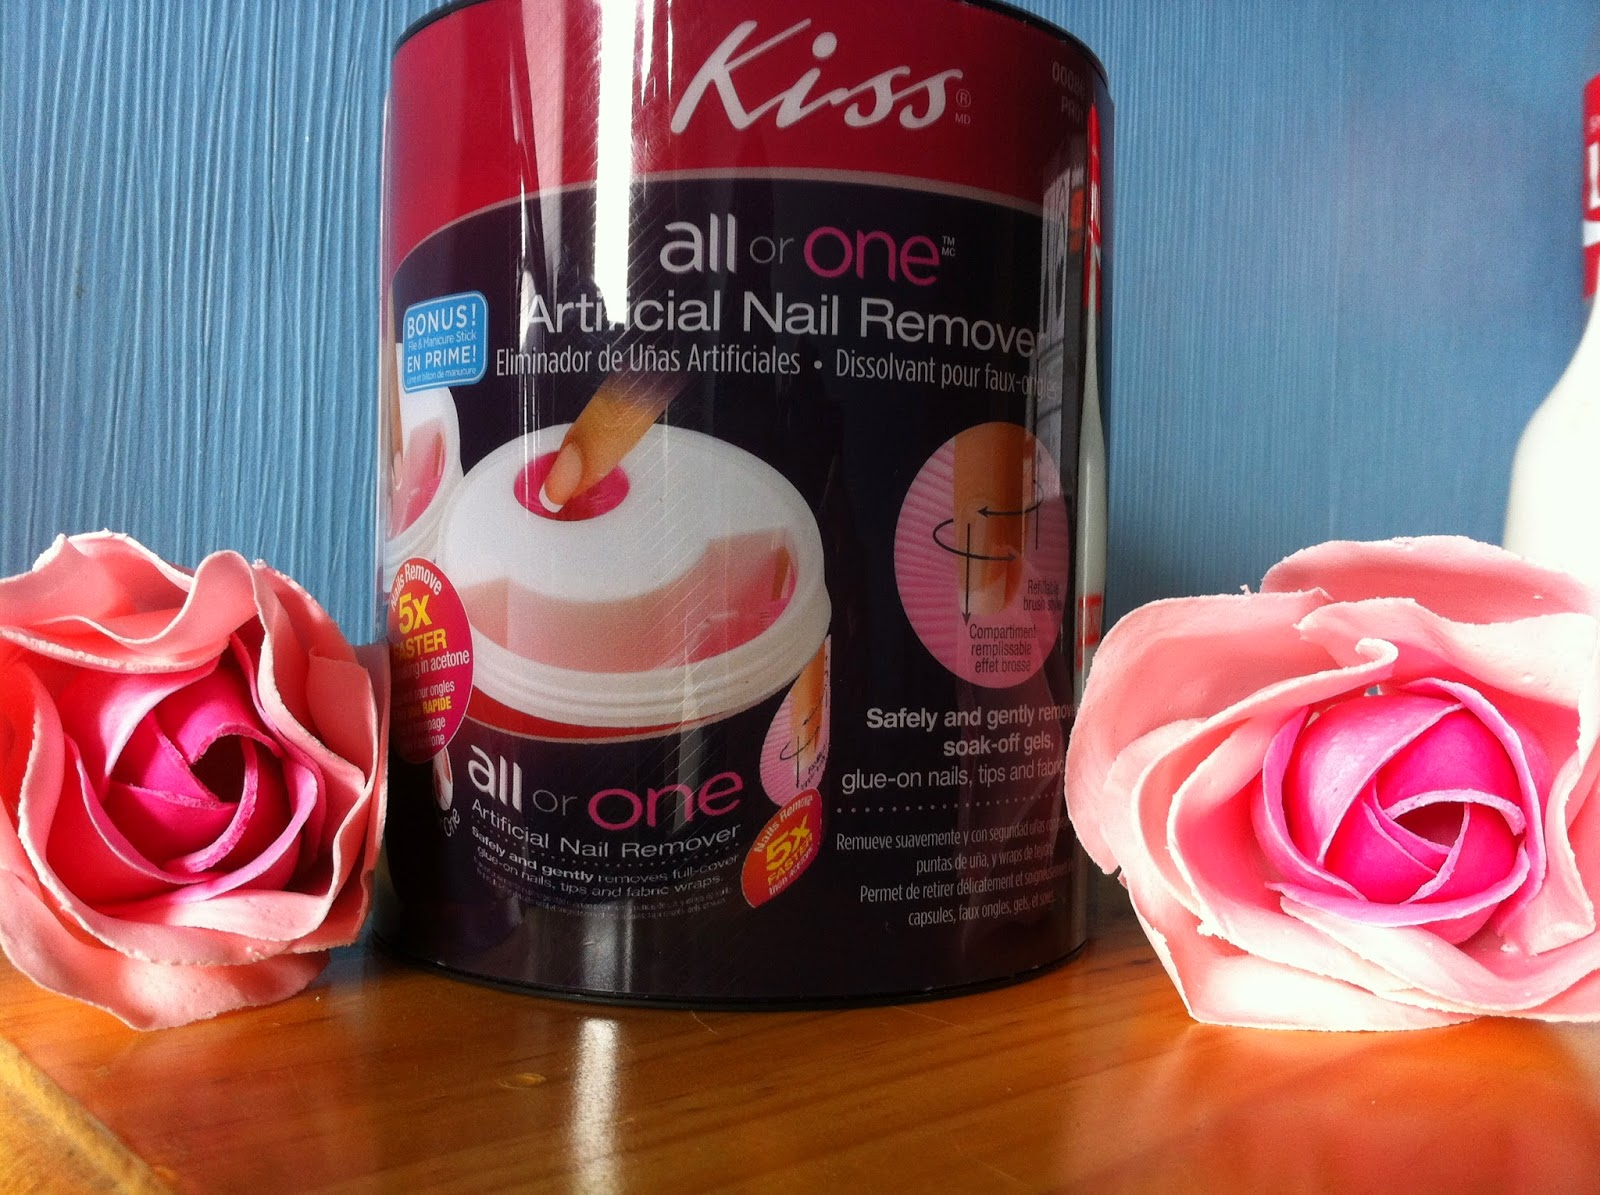 Fashion Happens: Kiss All or one Artificial Nail remover set review